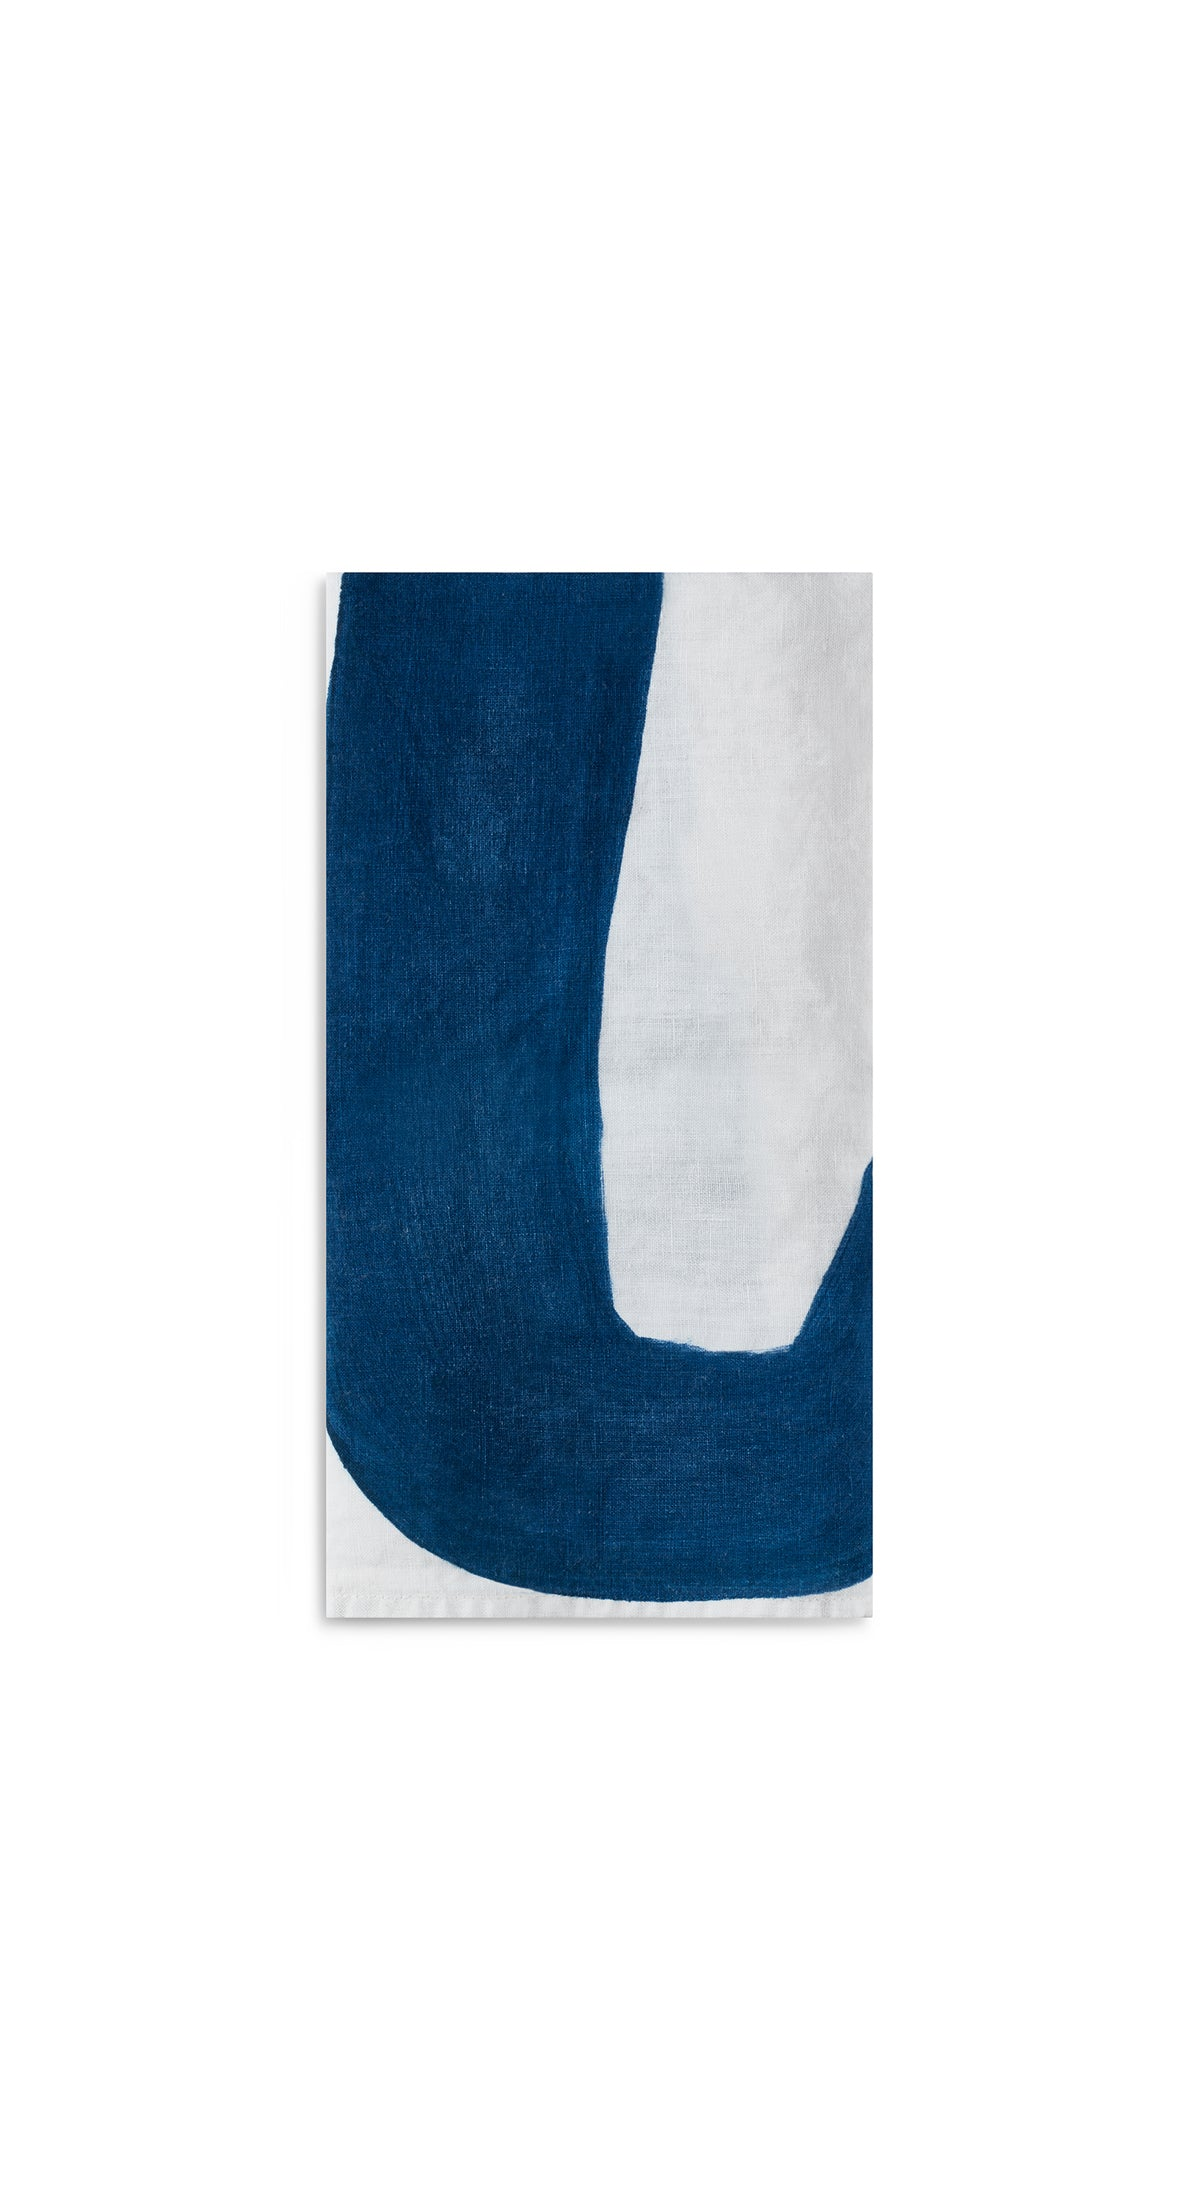 Alphabet Napkin 'U' in Midnight Blue